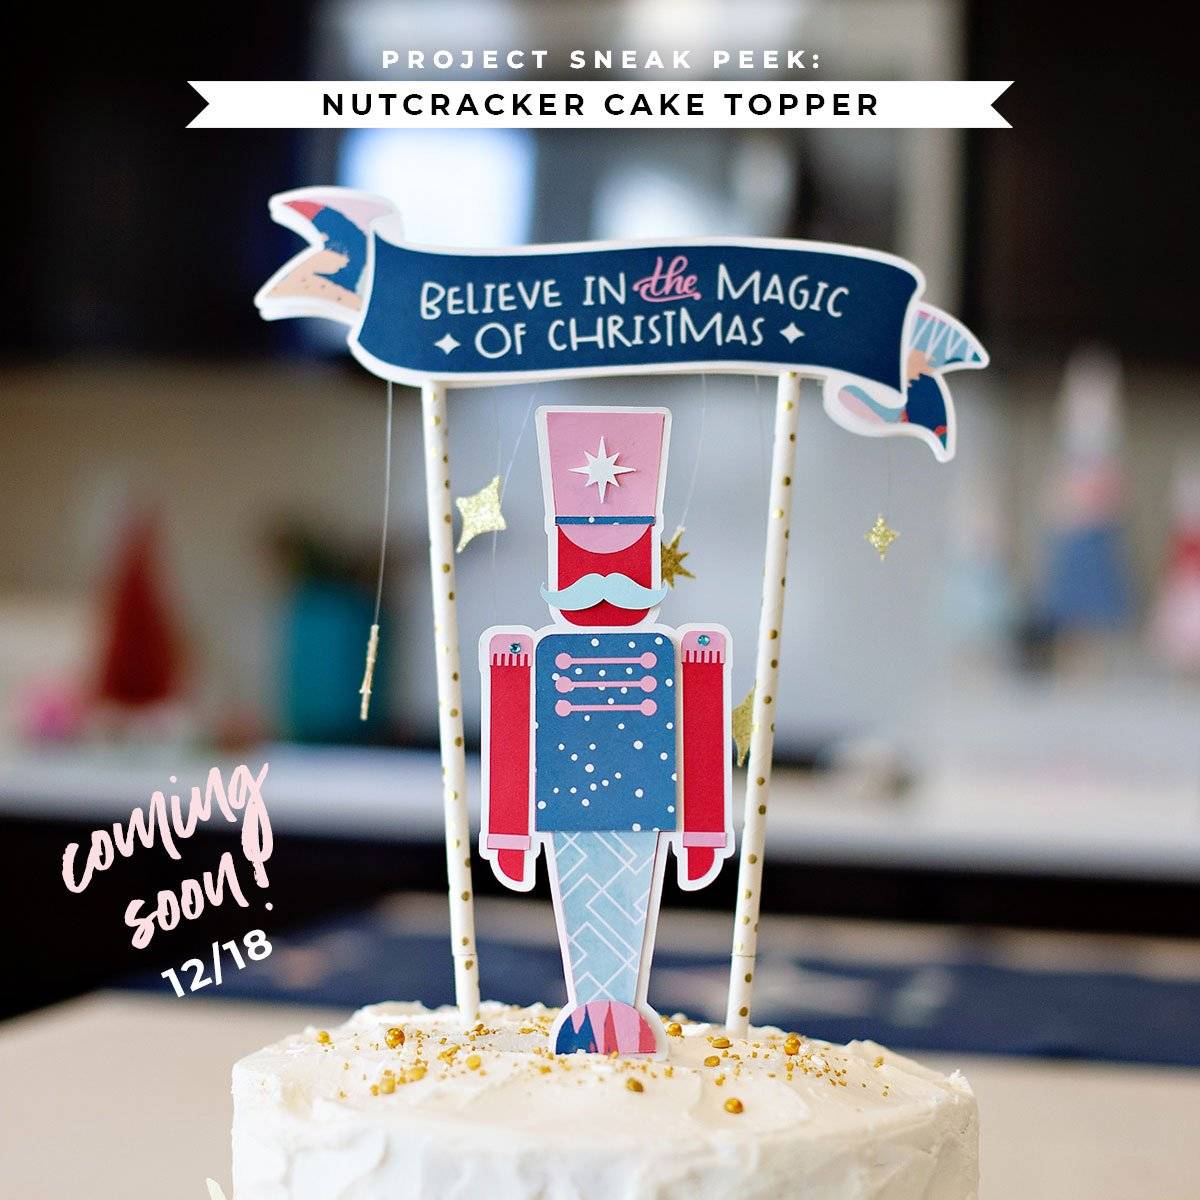 Nutcracker Cake Topper